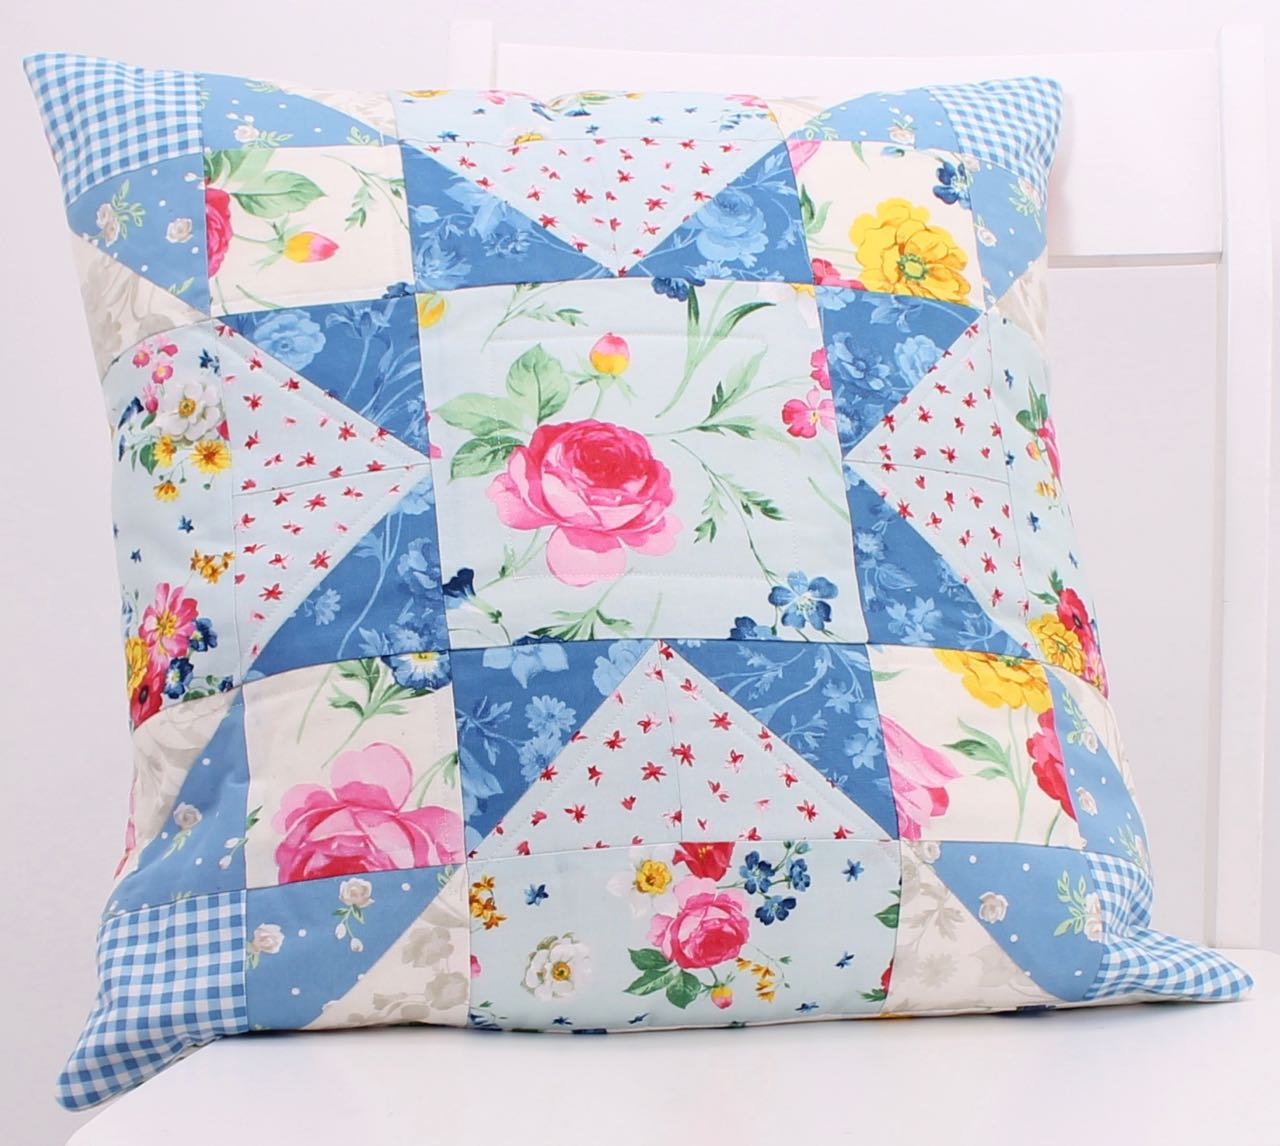 Afternoon Picnic Floating Star FREE! 18-inch Quilt Block Pillow Tutorial